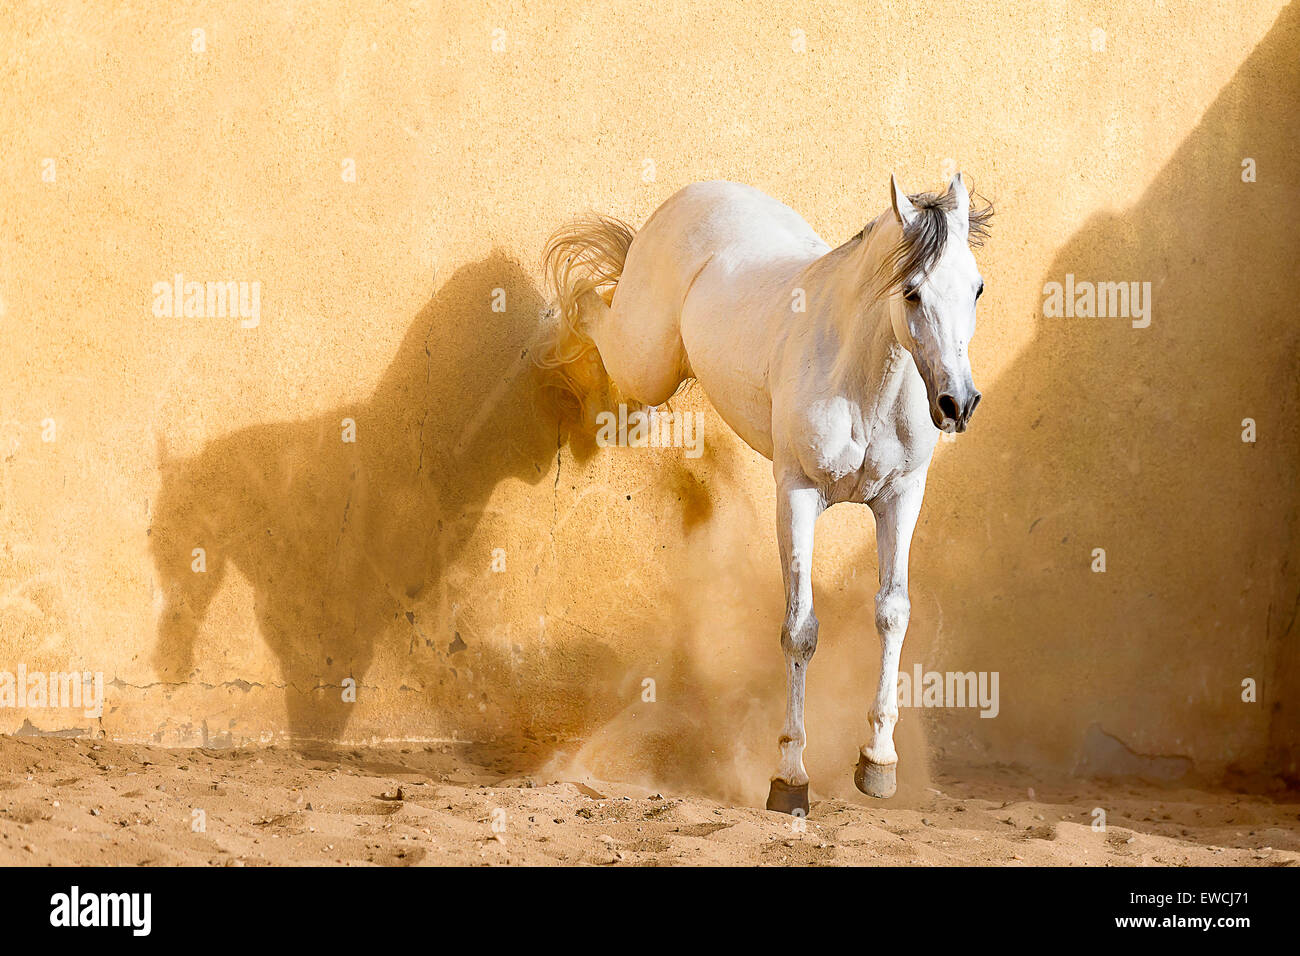 Arabian Horse. Gray stallion kicking in a paddock. Egypt - Stock Image